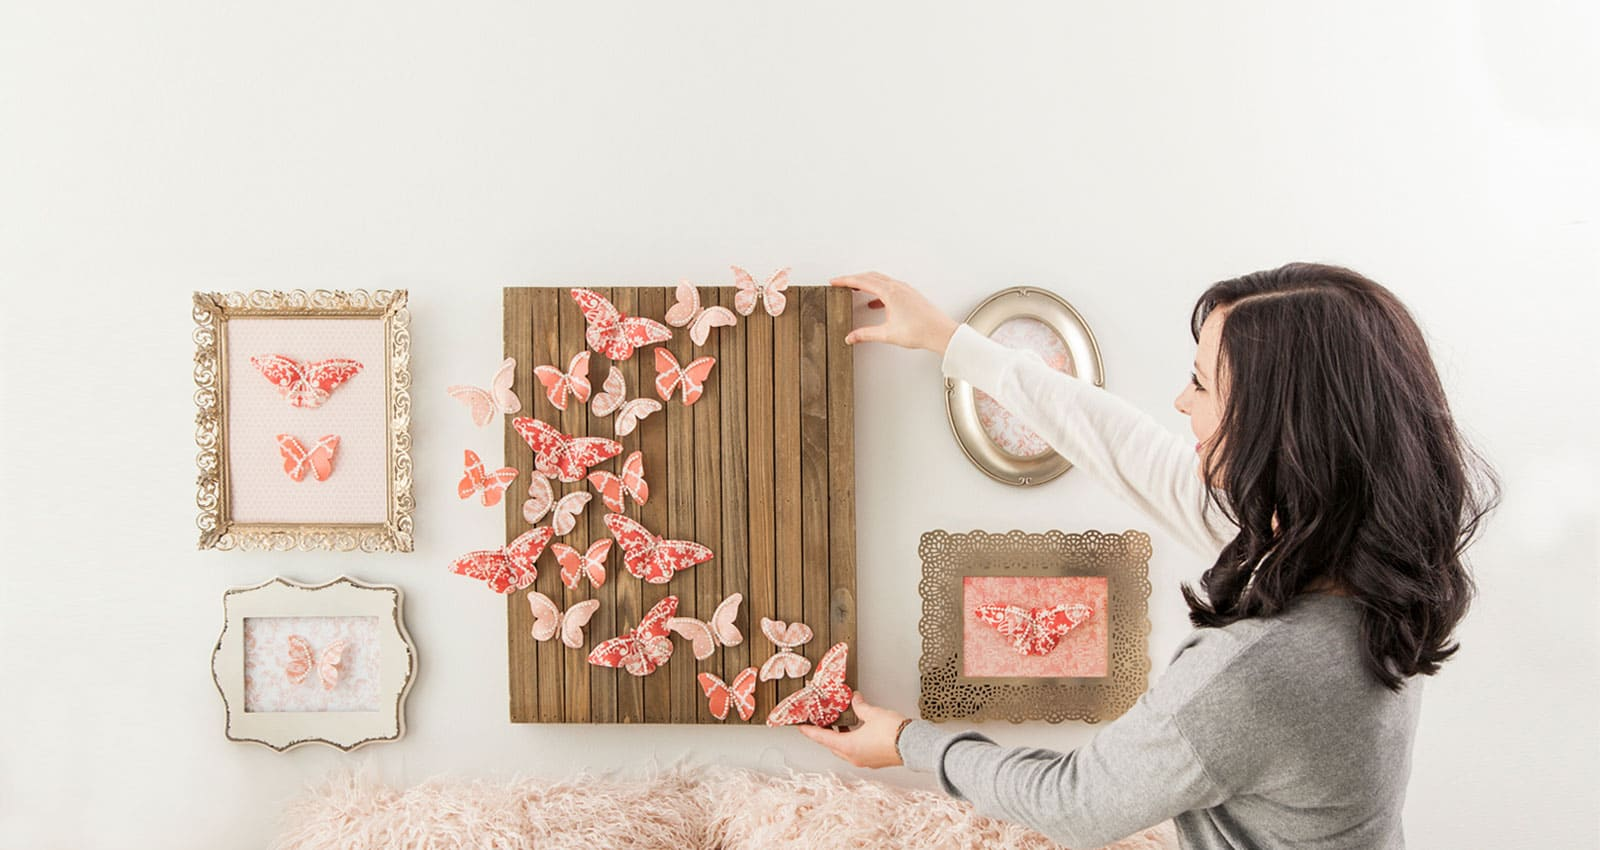 Add a personal Boho Touch to your Home Decor with Cricut